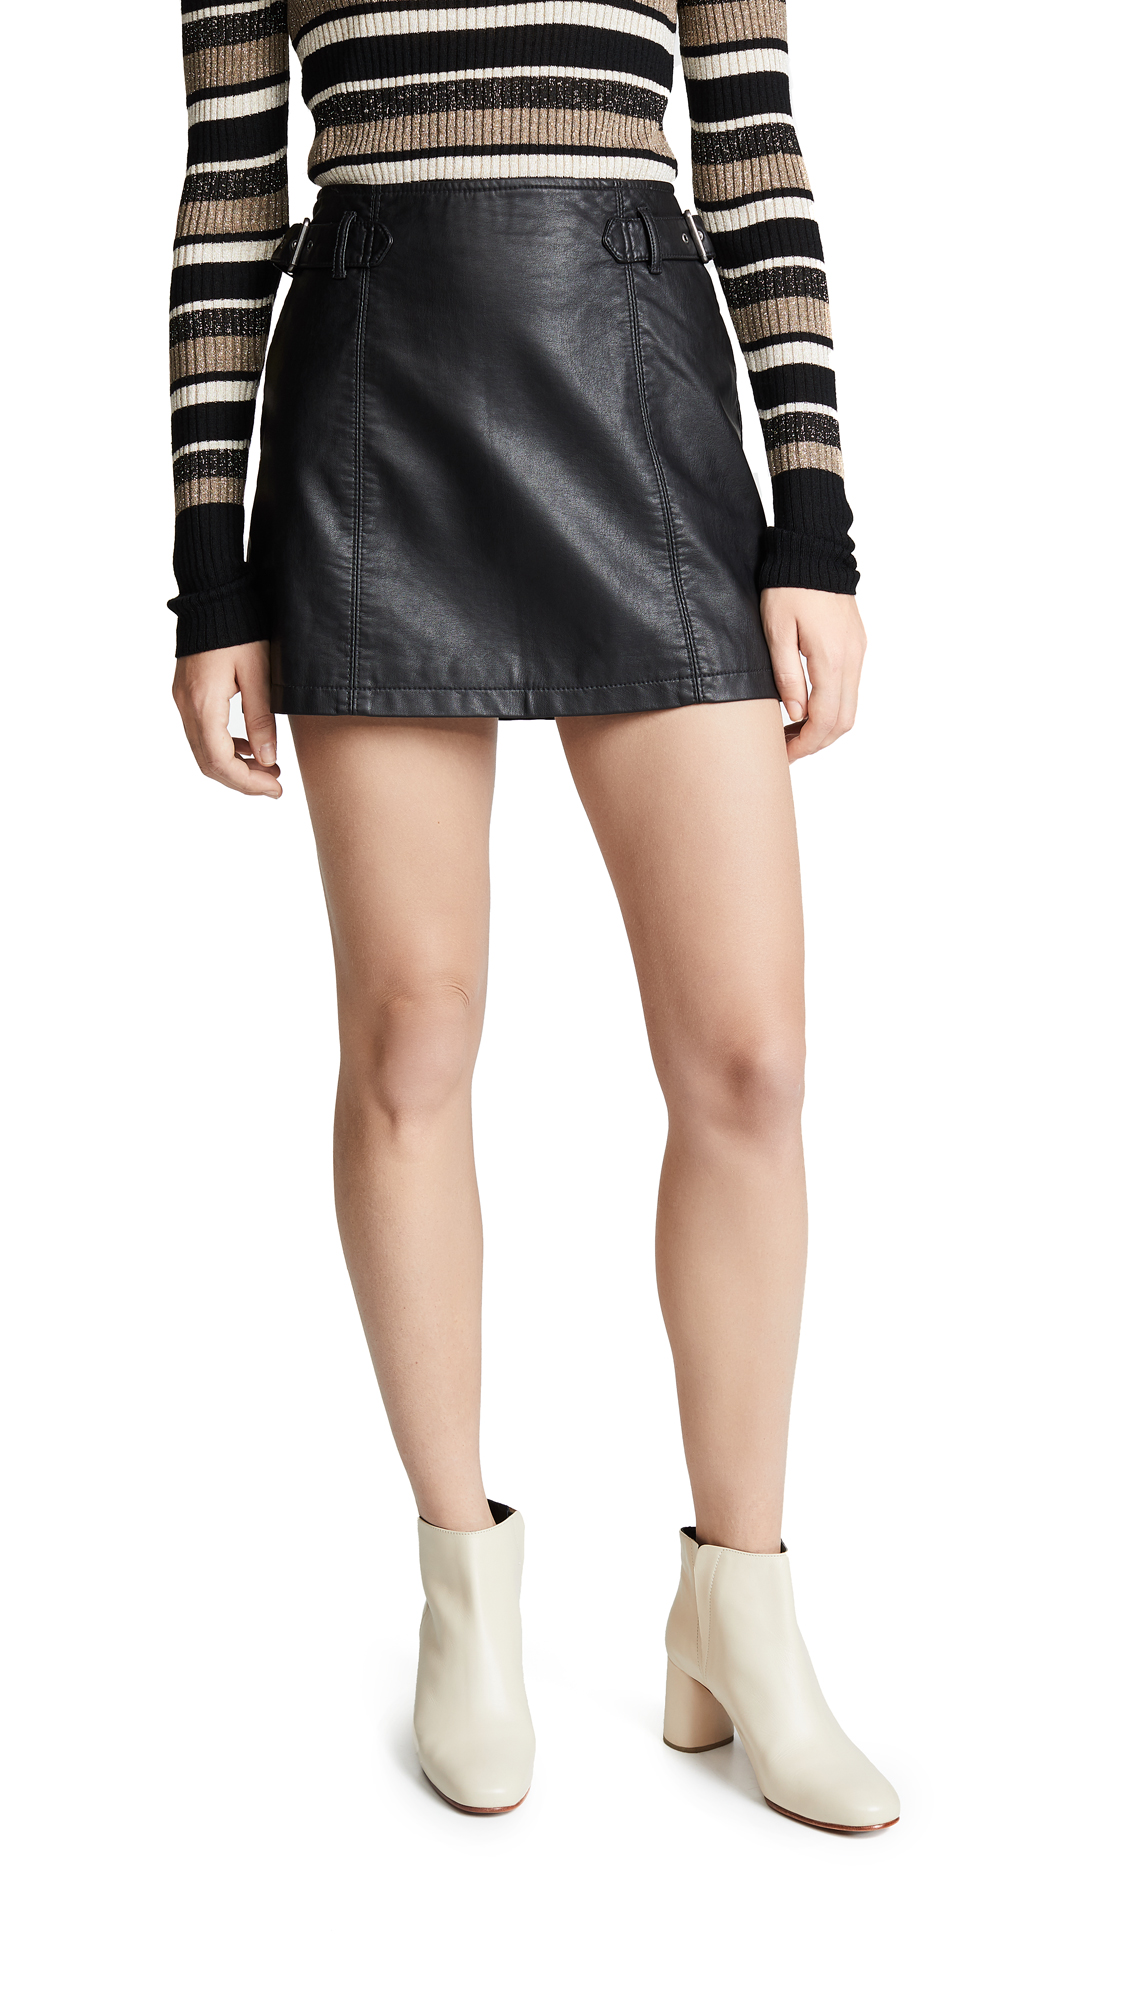 Free People Charli A-Line Skirt - Black